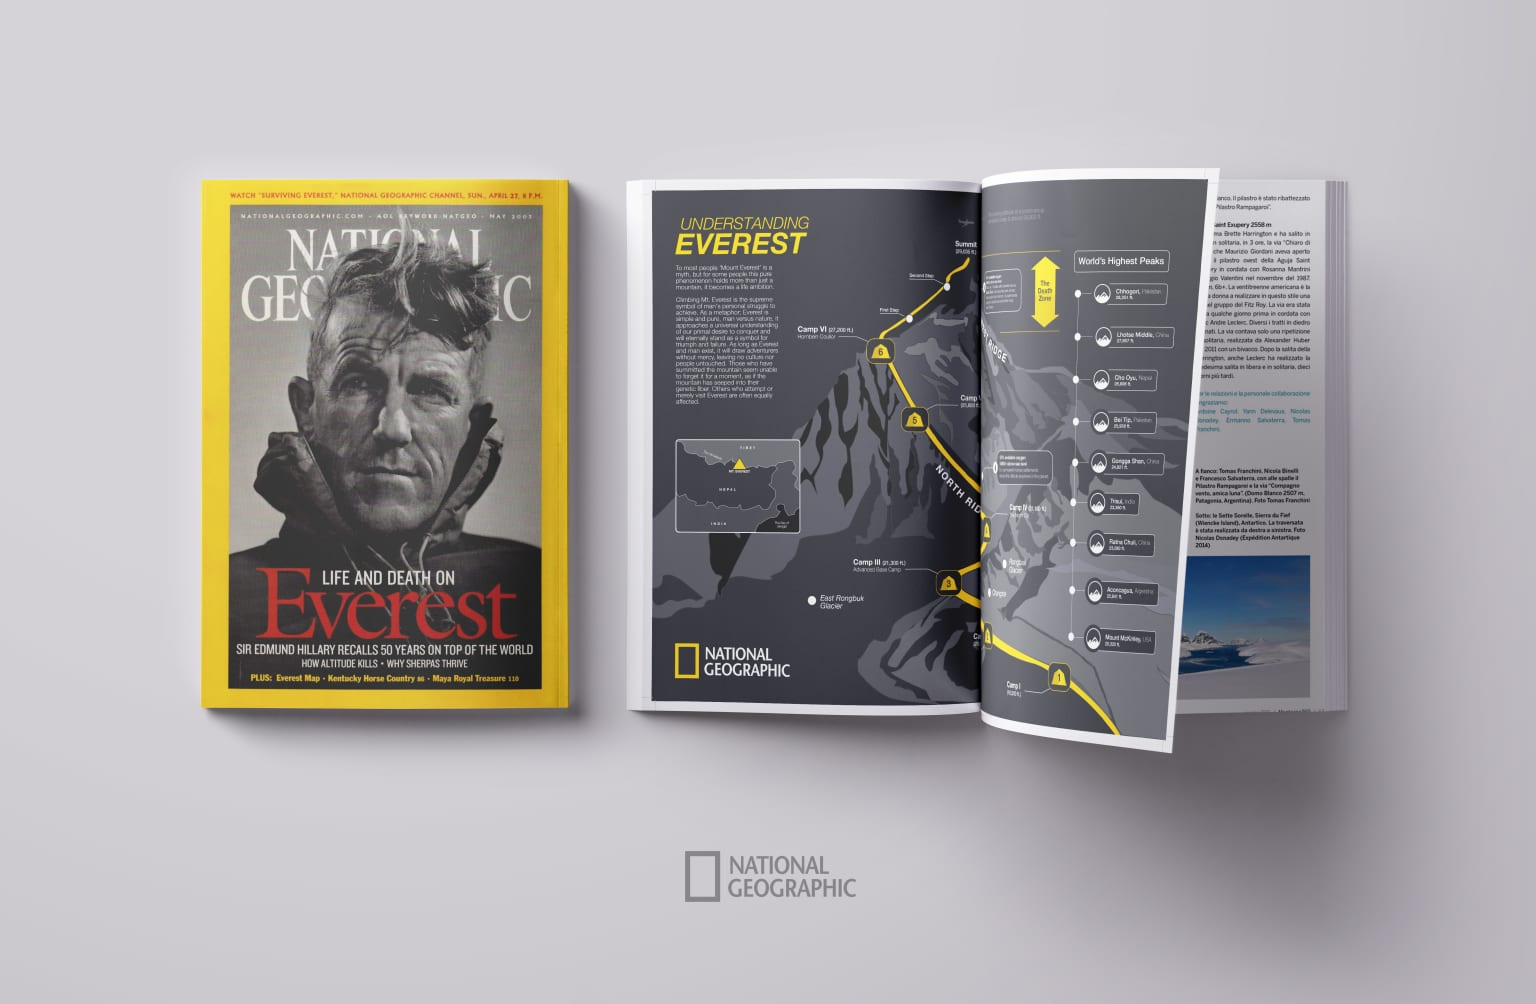 National Geographic: Project Everest